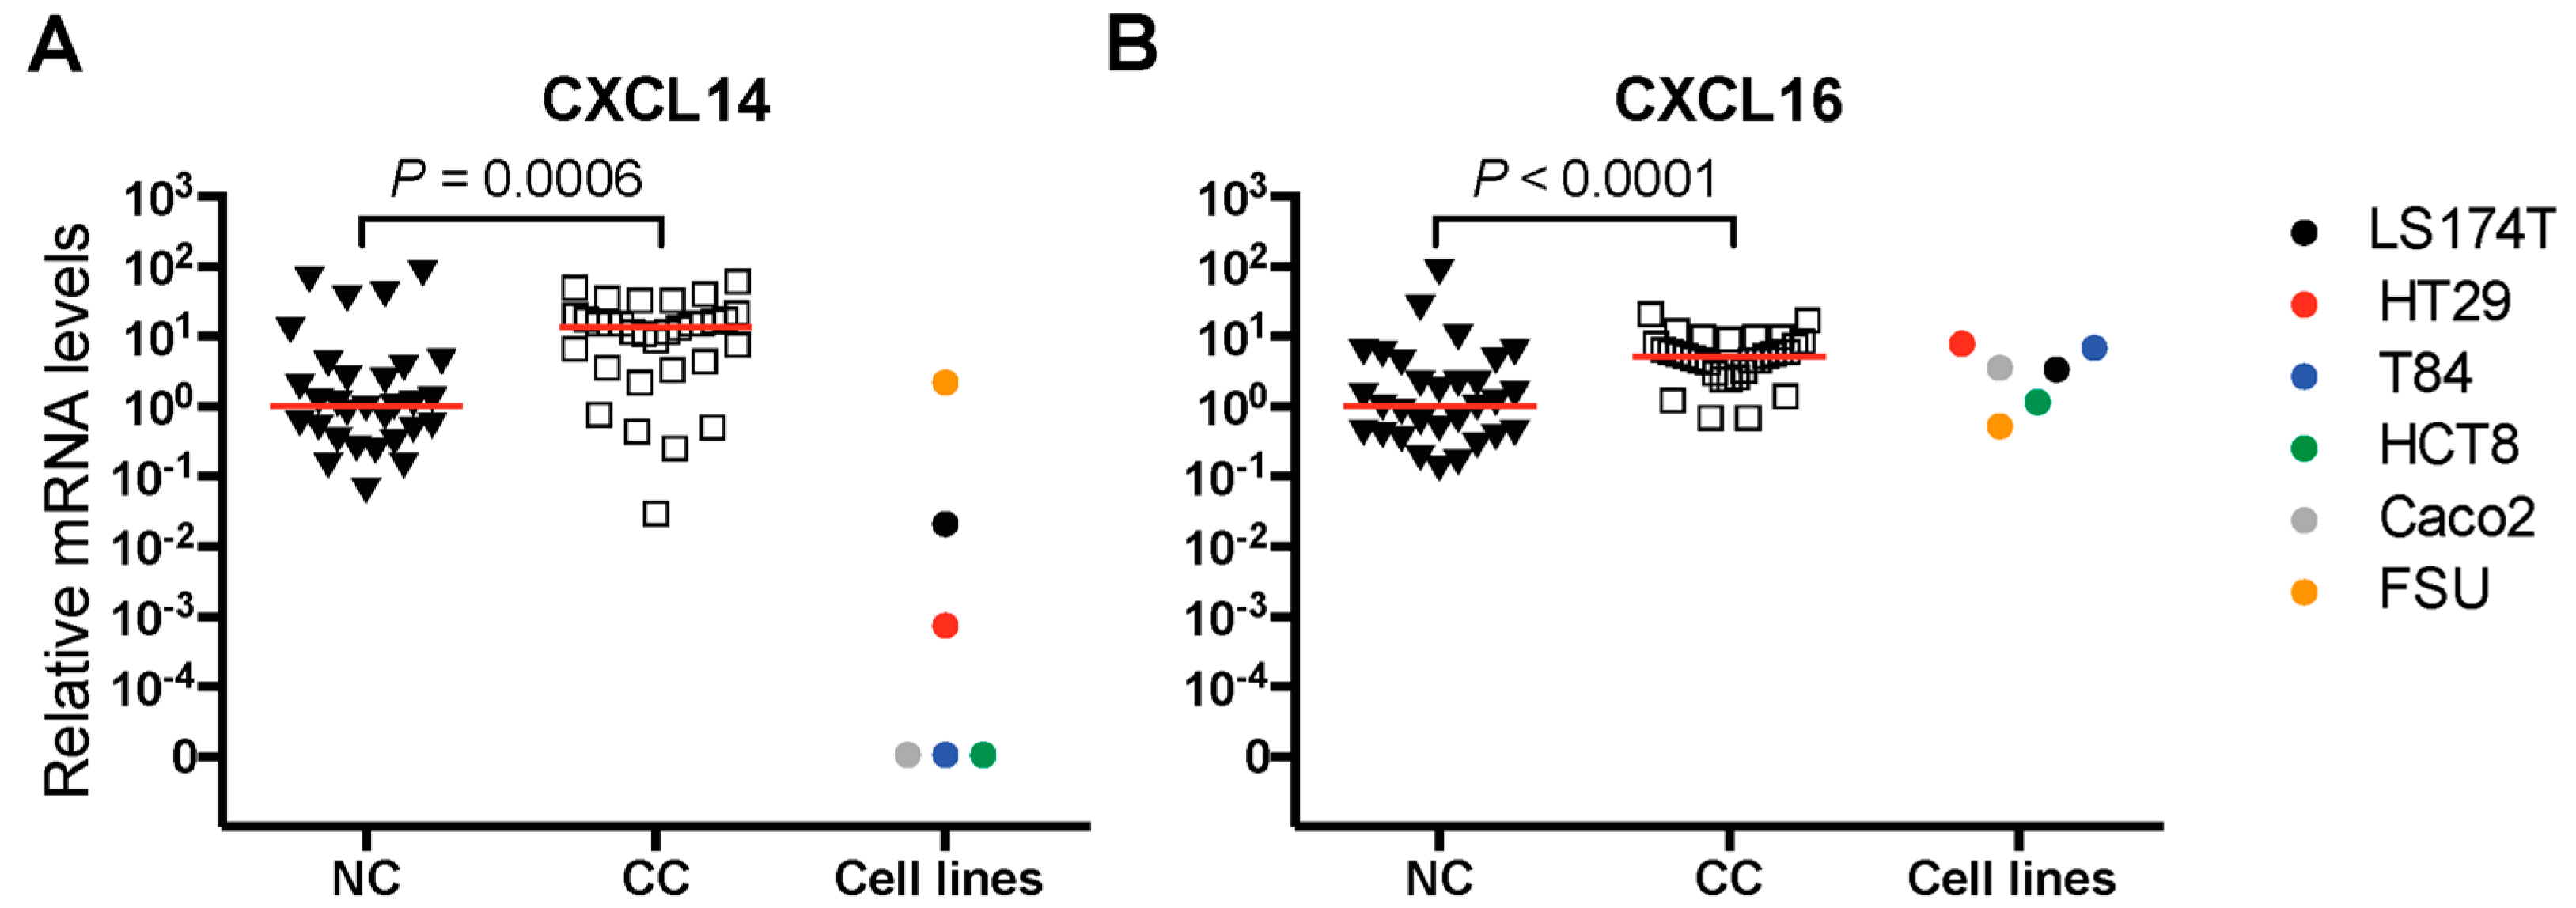 Ijms Free Full Text The Chemokine Cxcl16 Is A New Biomarker For Lymph Node Analysis Of Colon Cancer Outcome